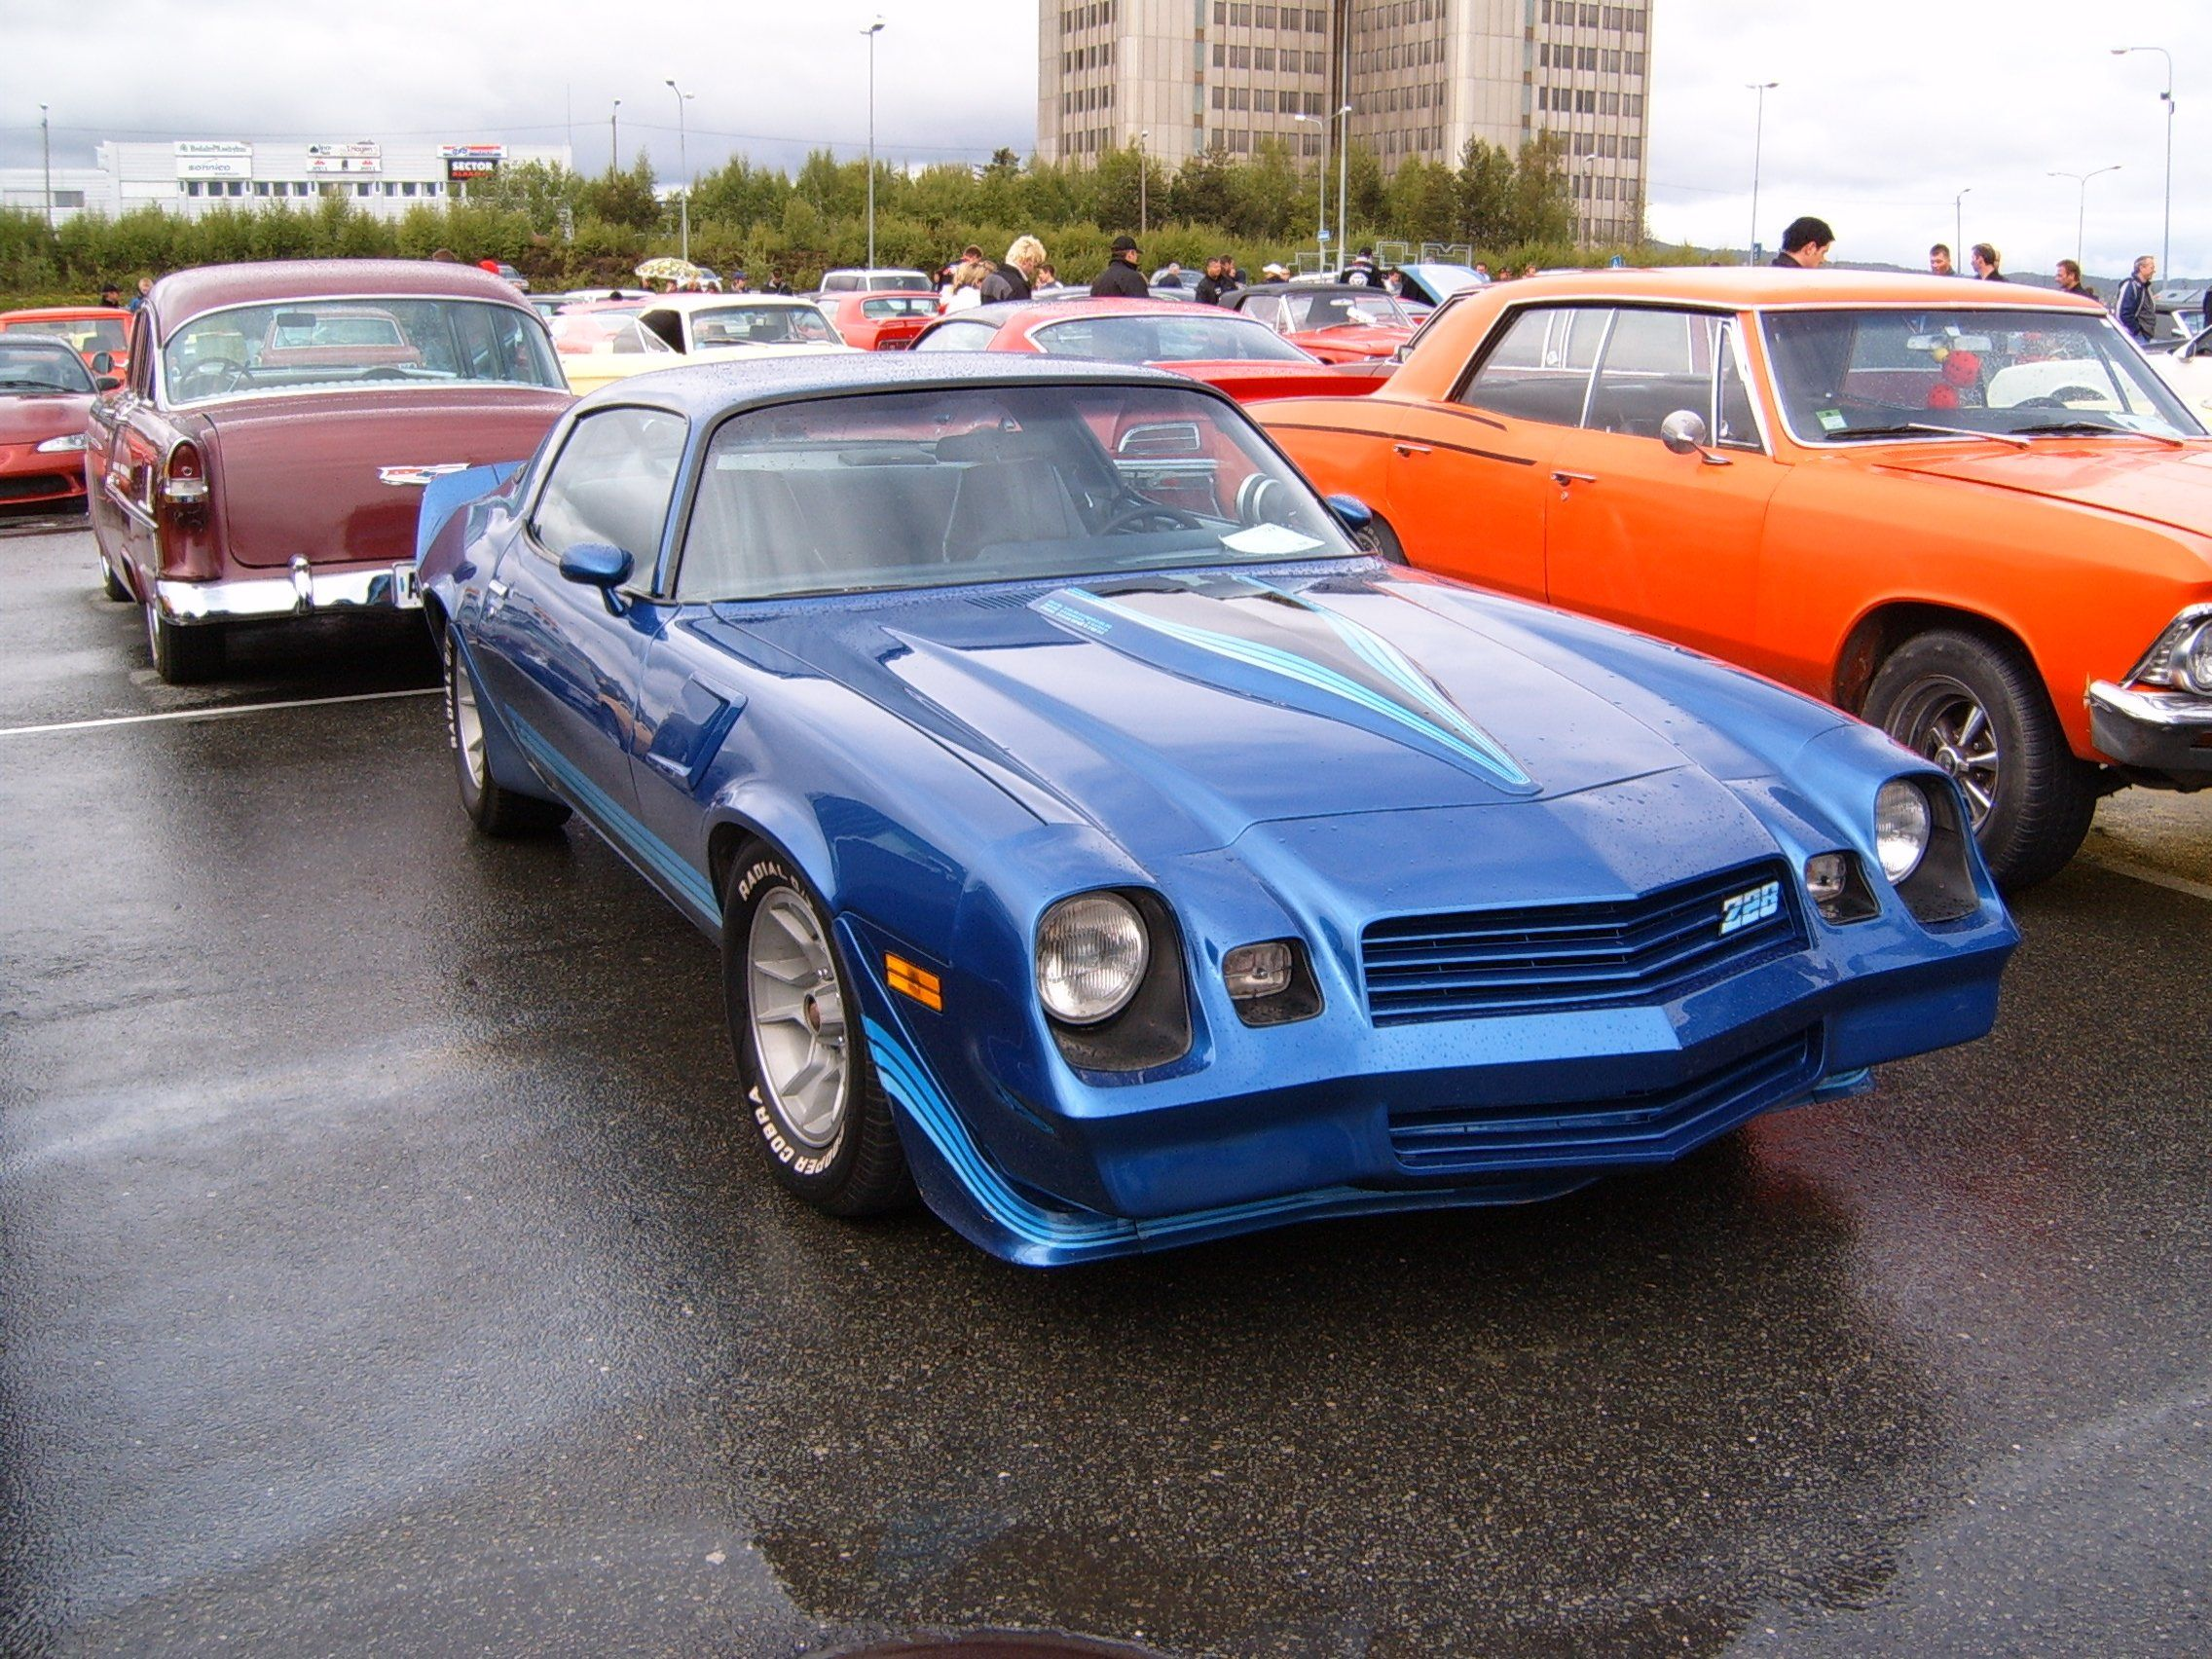 2nd camaro car muscle usa chevrolet chevy generation muscle usa z28 1970 1971 1972 1973 1974